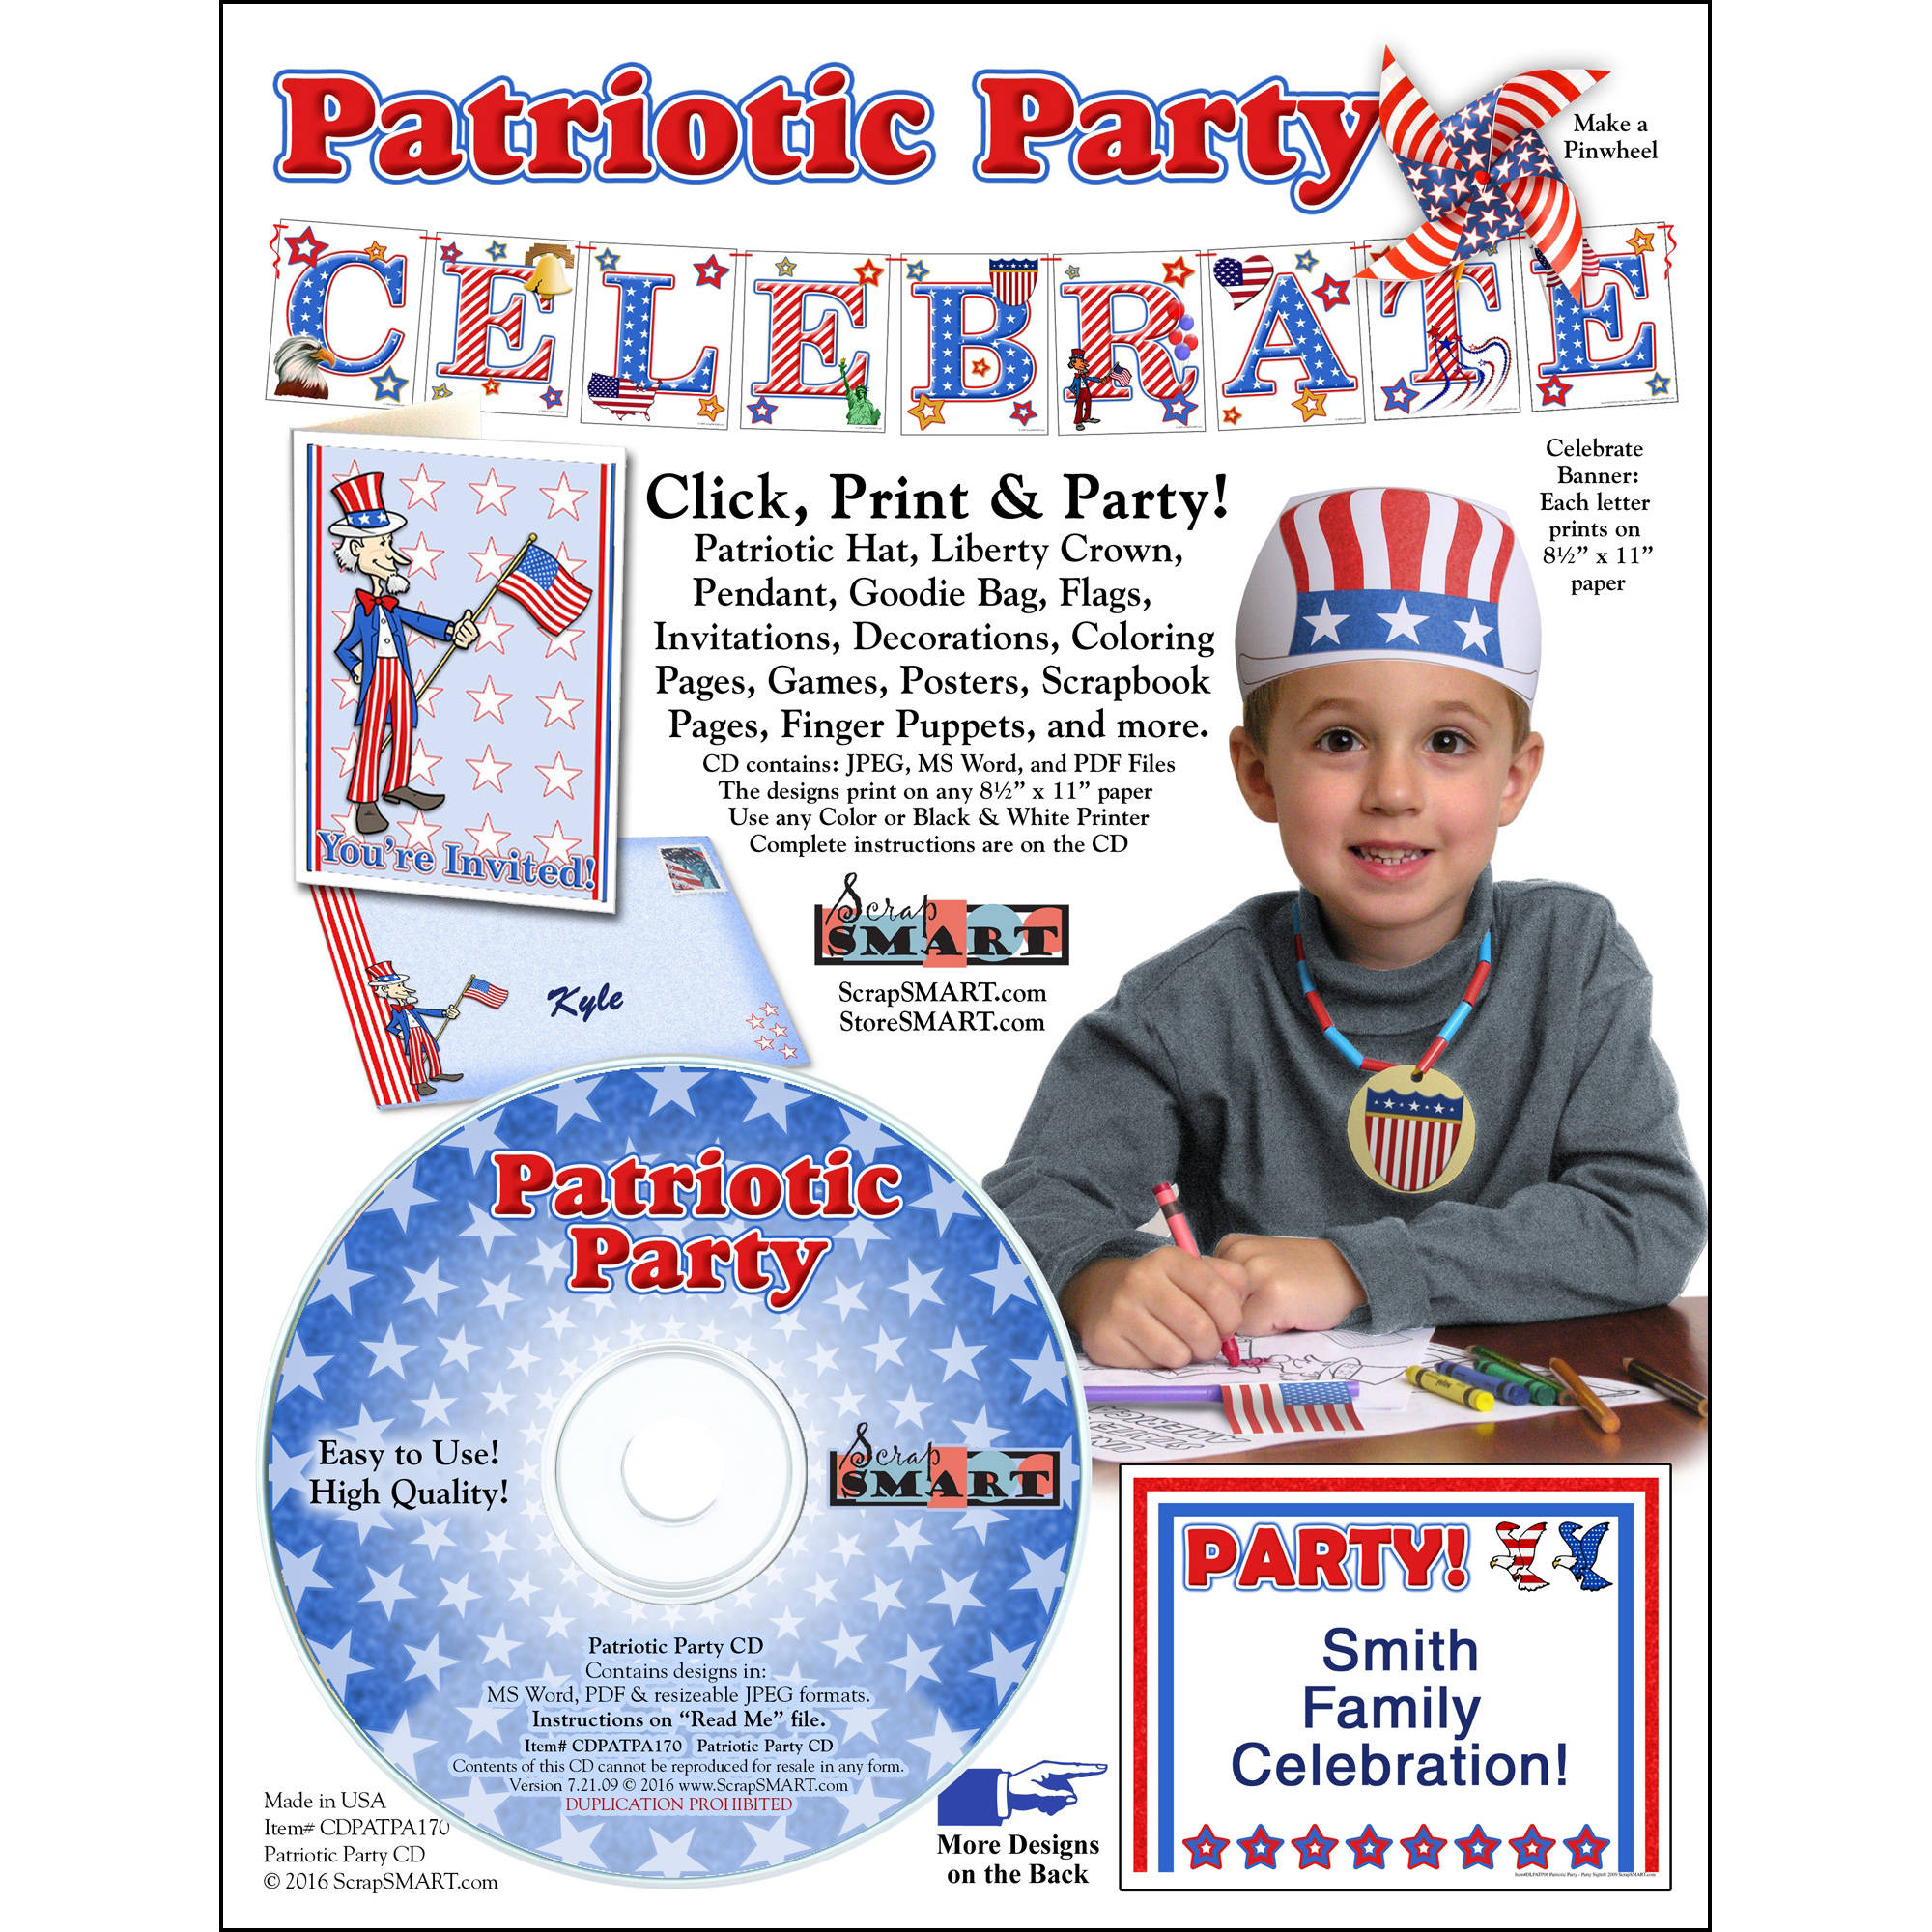 ScrapSMART Patriotic Party CD-ROM: Decorations, Crafts, Scrapbook and Coloring Pages